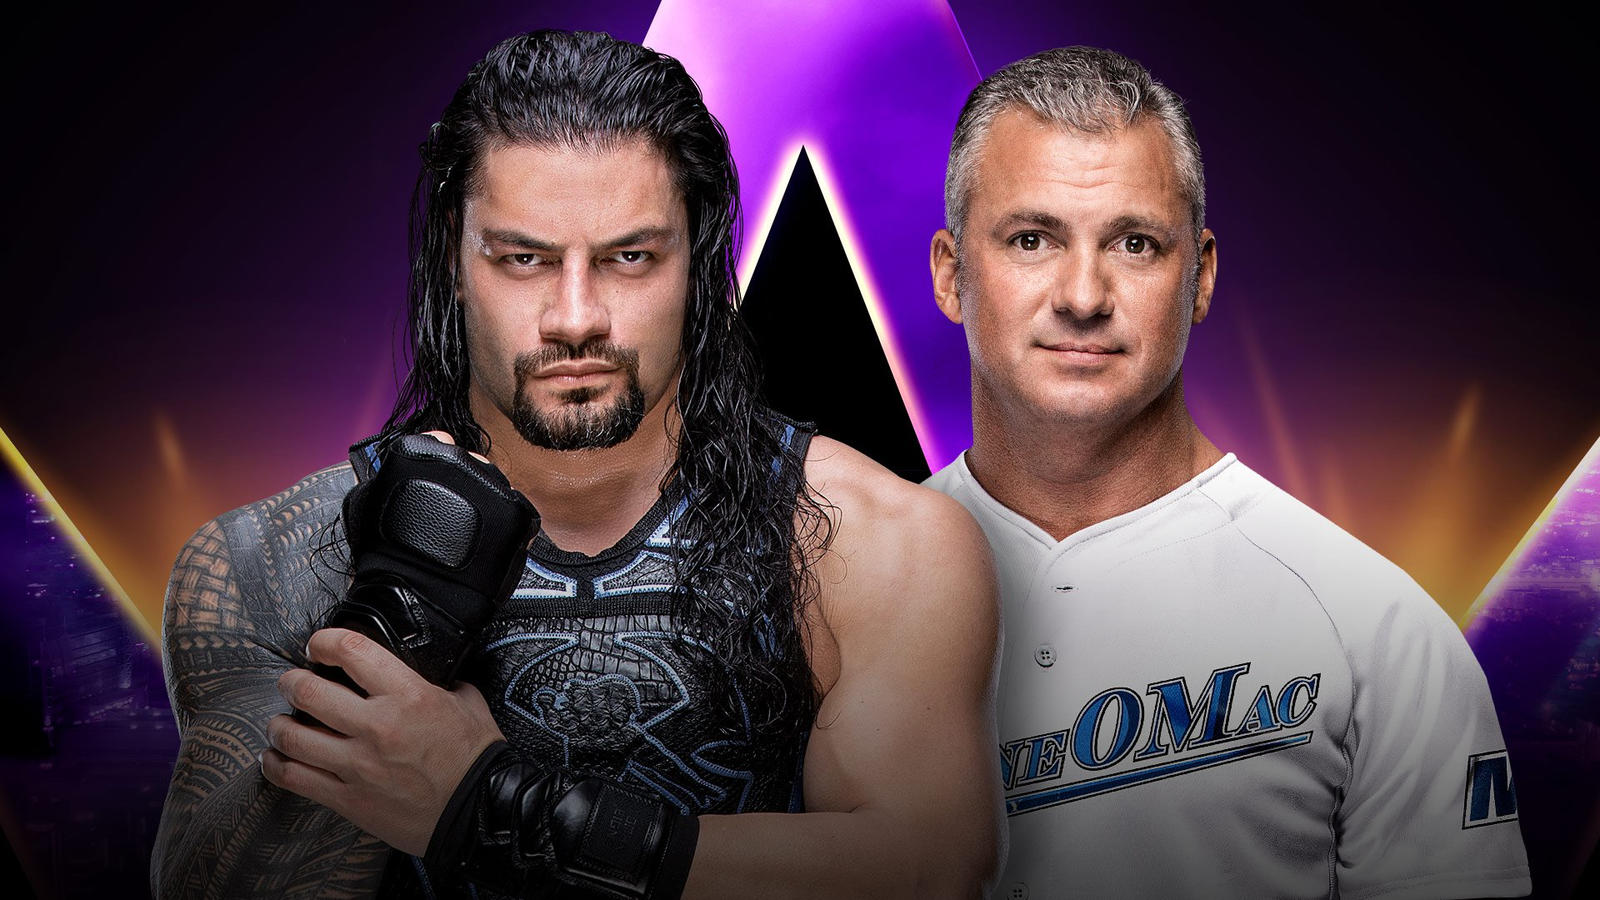 The Big Dog is coming to Jeddah for WWE Super ShowDown June 7th